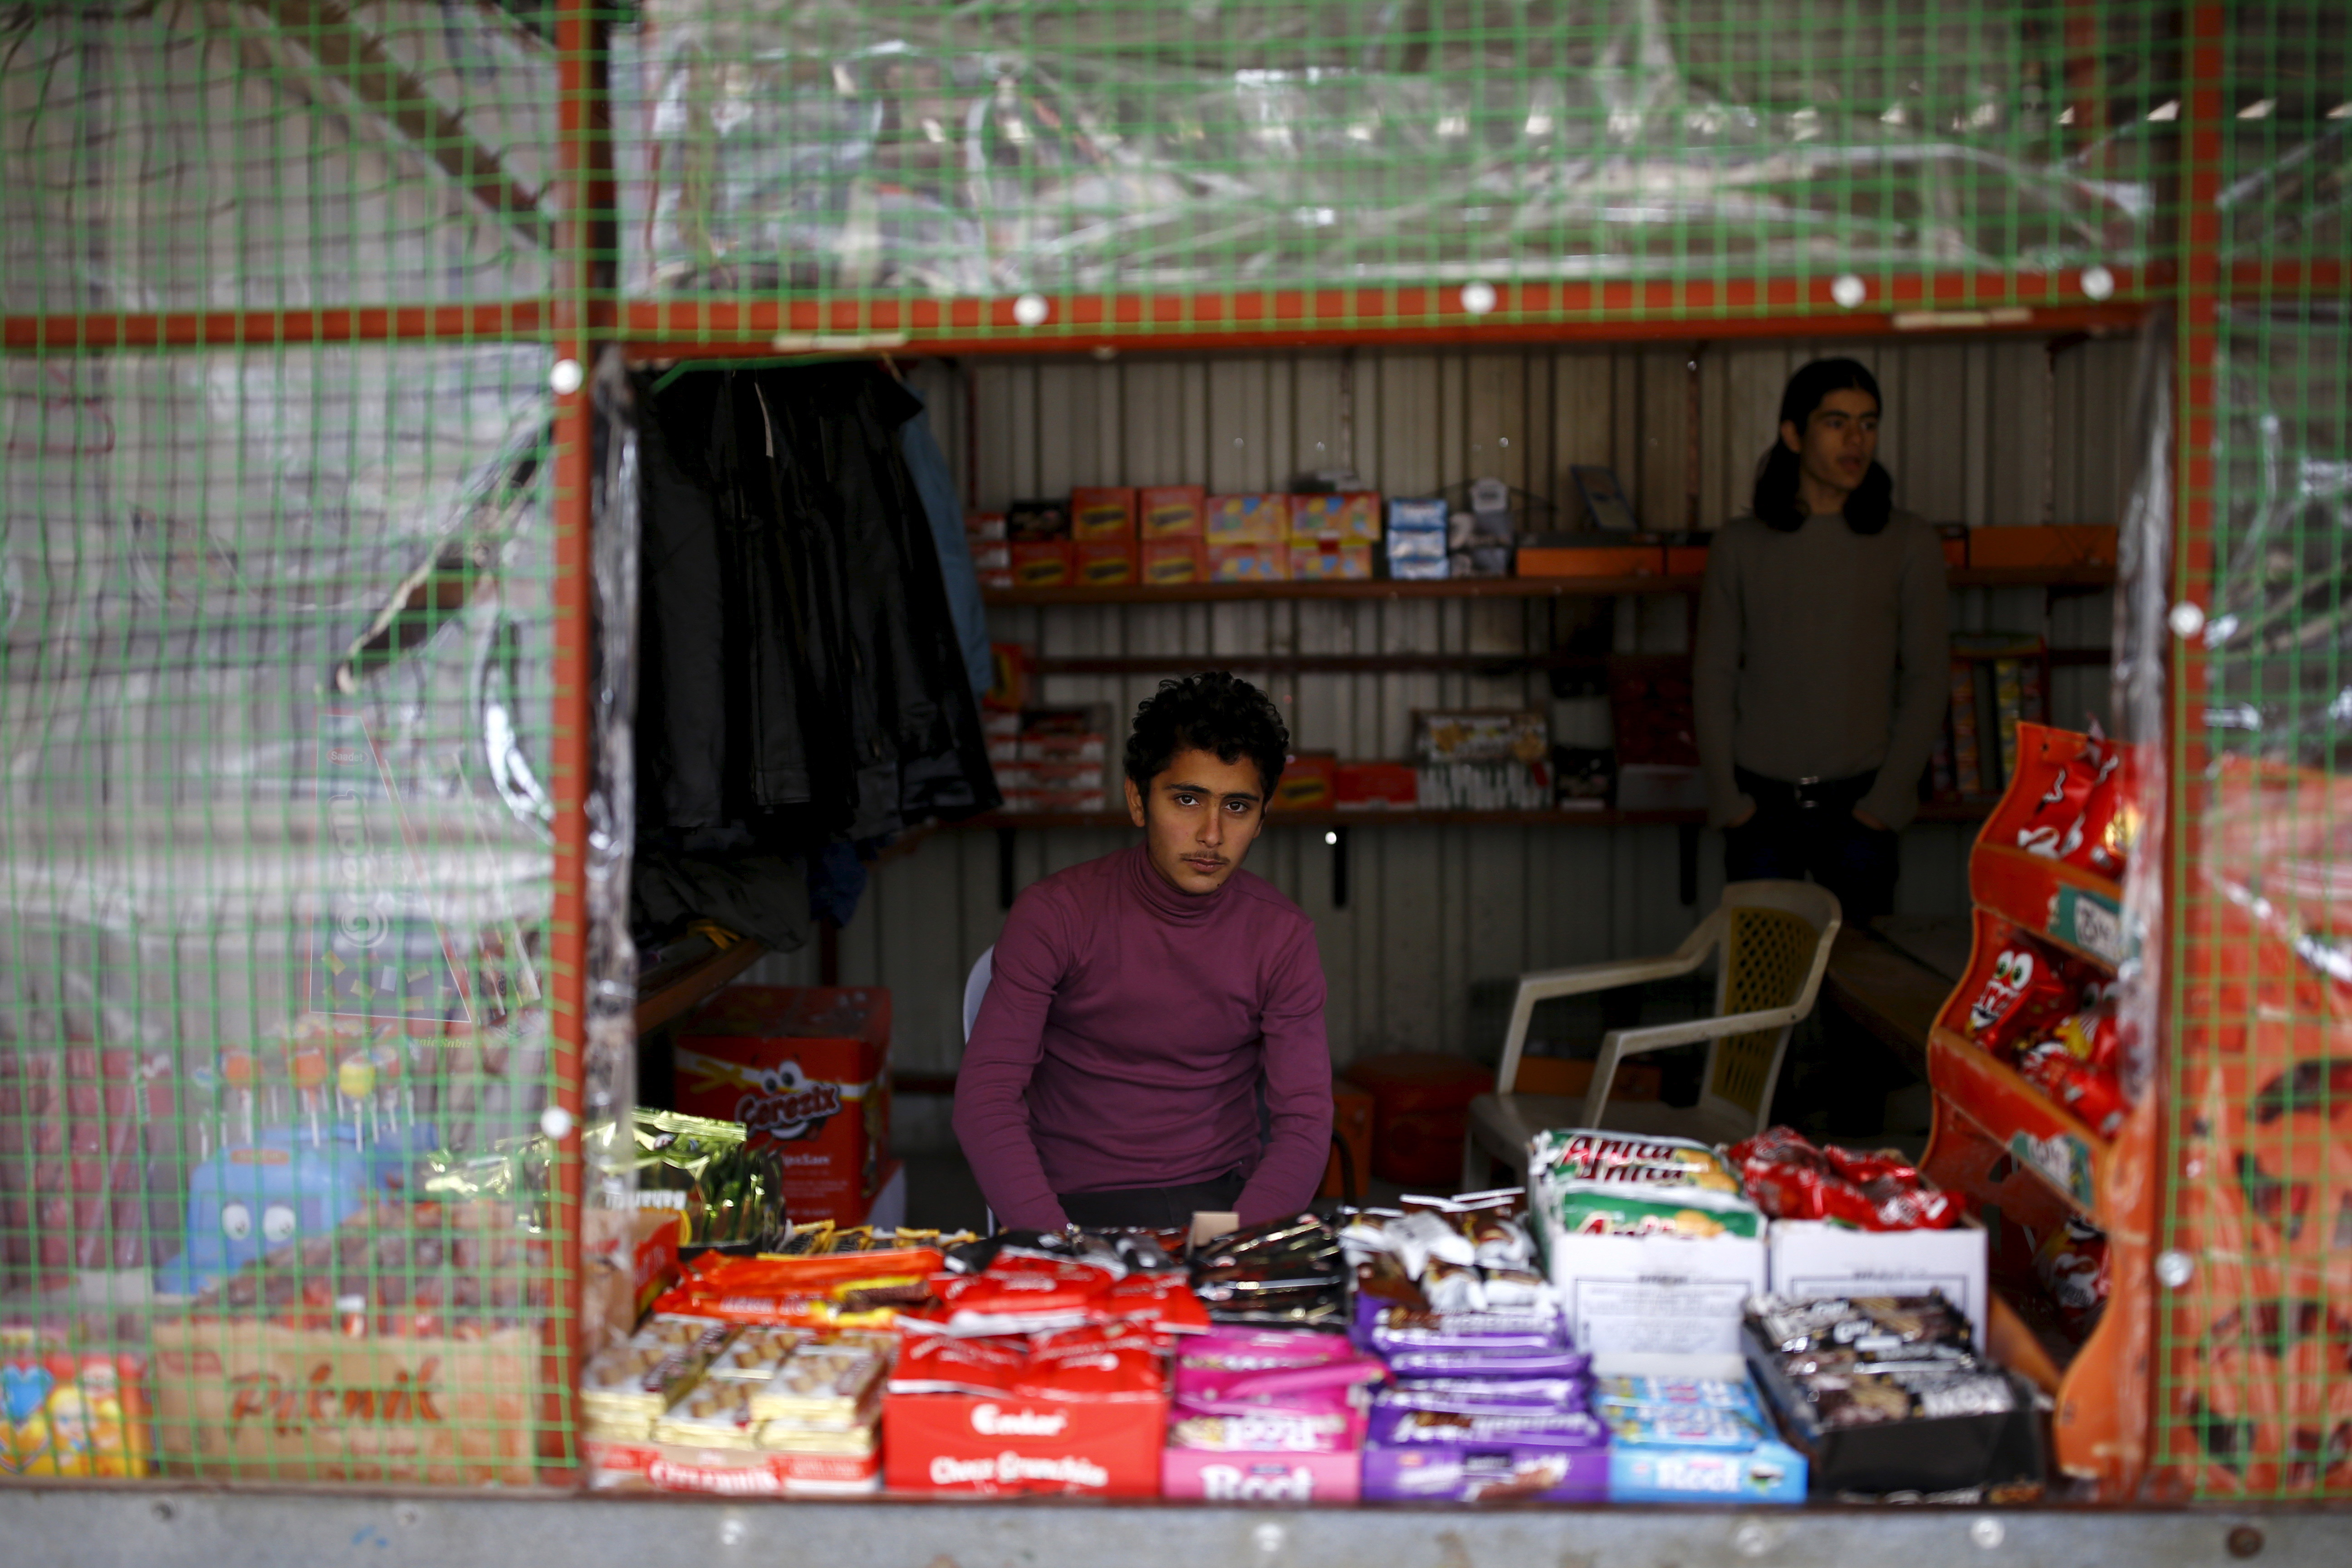 Syrian refugee Resad Bekur, 18, poses in a shop where he works in Yayladagi refugee camp in Hatay province, near the Turkish-Syrian border, Turkey, December 16, 2015. Syria's conflict has left hundreds of thousands dead, pushed millions more into exile, and had a profound effect on children who lost their homes or got caught up in the bloodletting. The drawings of young refugees living in Turkey show their memories of home and hopes for its future. The pictures also point to the mental scars borne by 2.3 million Syrian refugees living in Turkey, more than half of them children. REUTERS/Umit Bektas  - GF20000092551